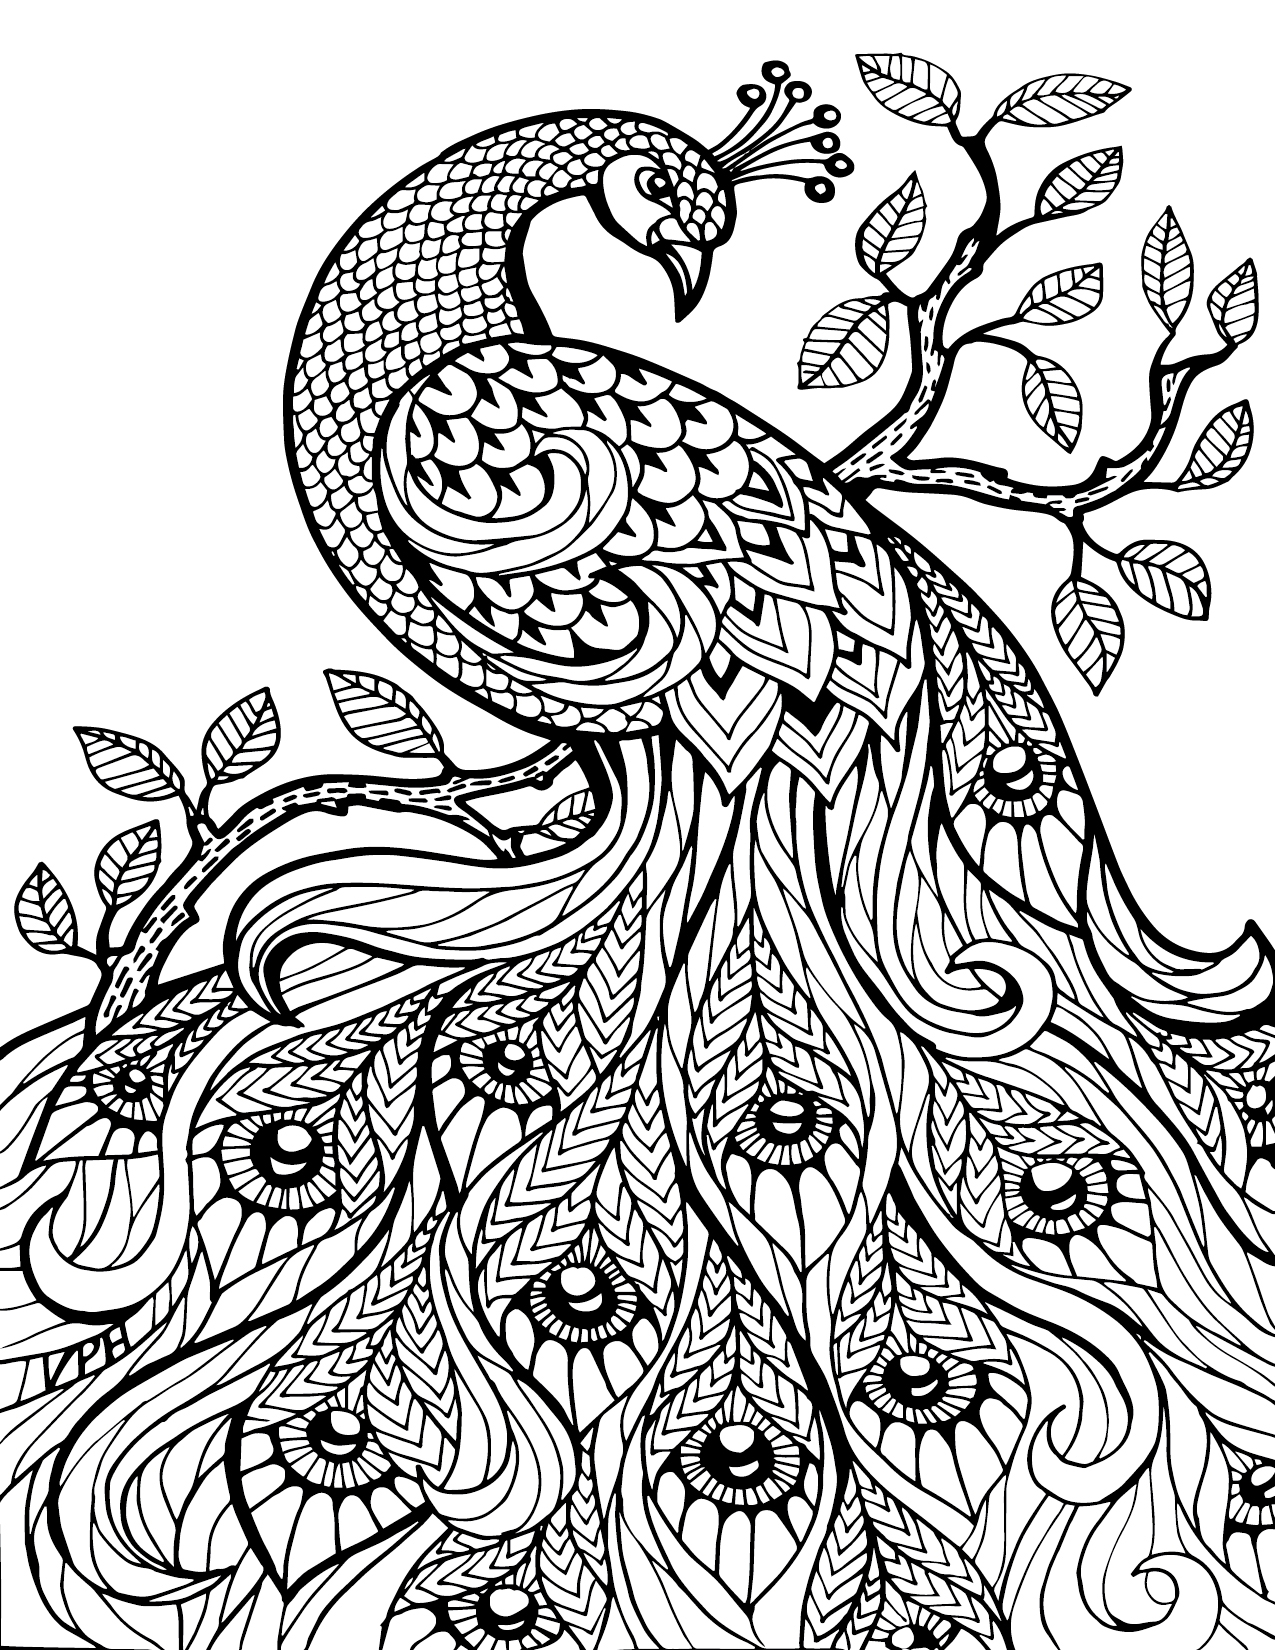 adult coloring book pages - cat coloring pages for adults